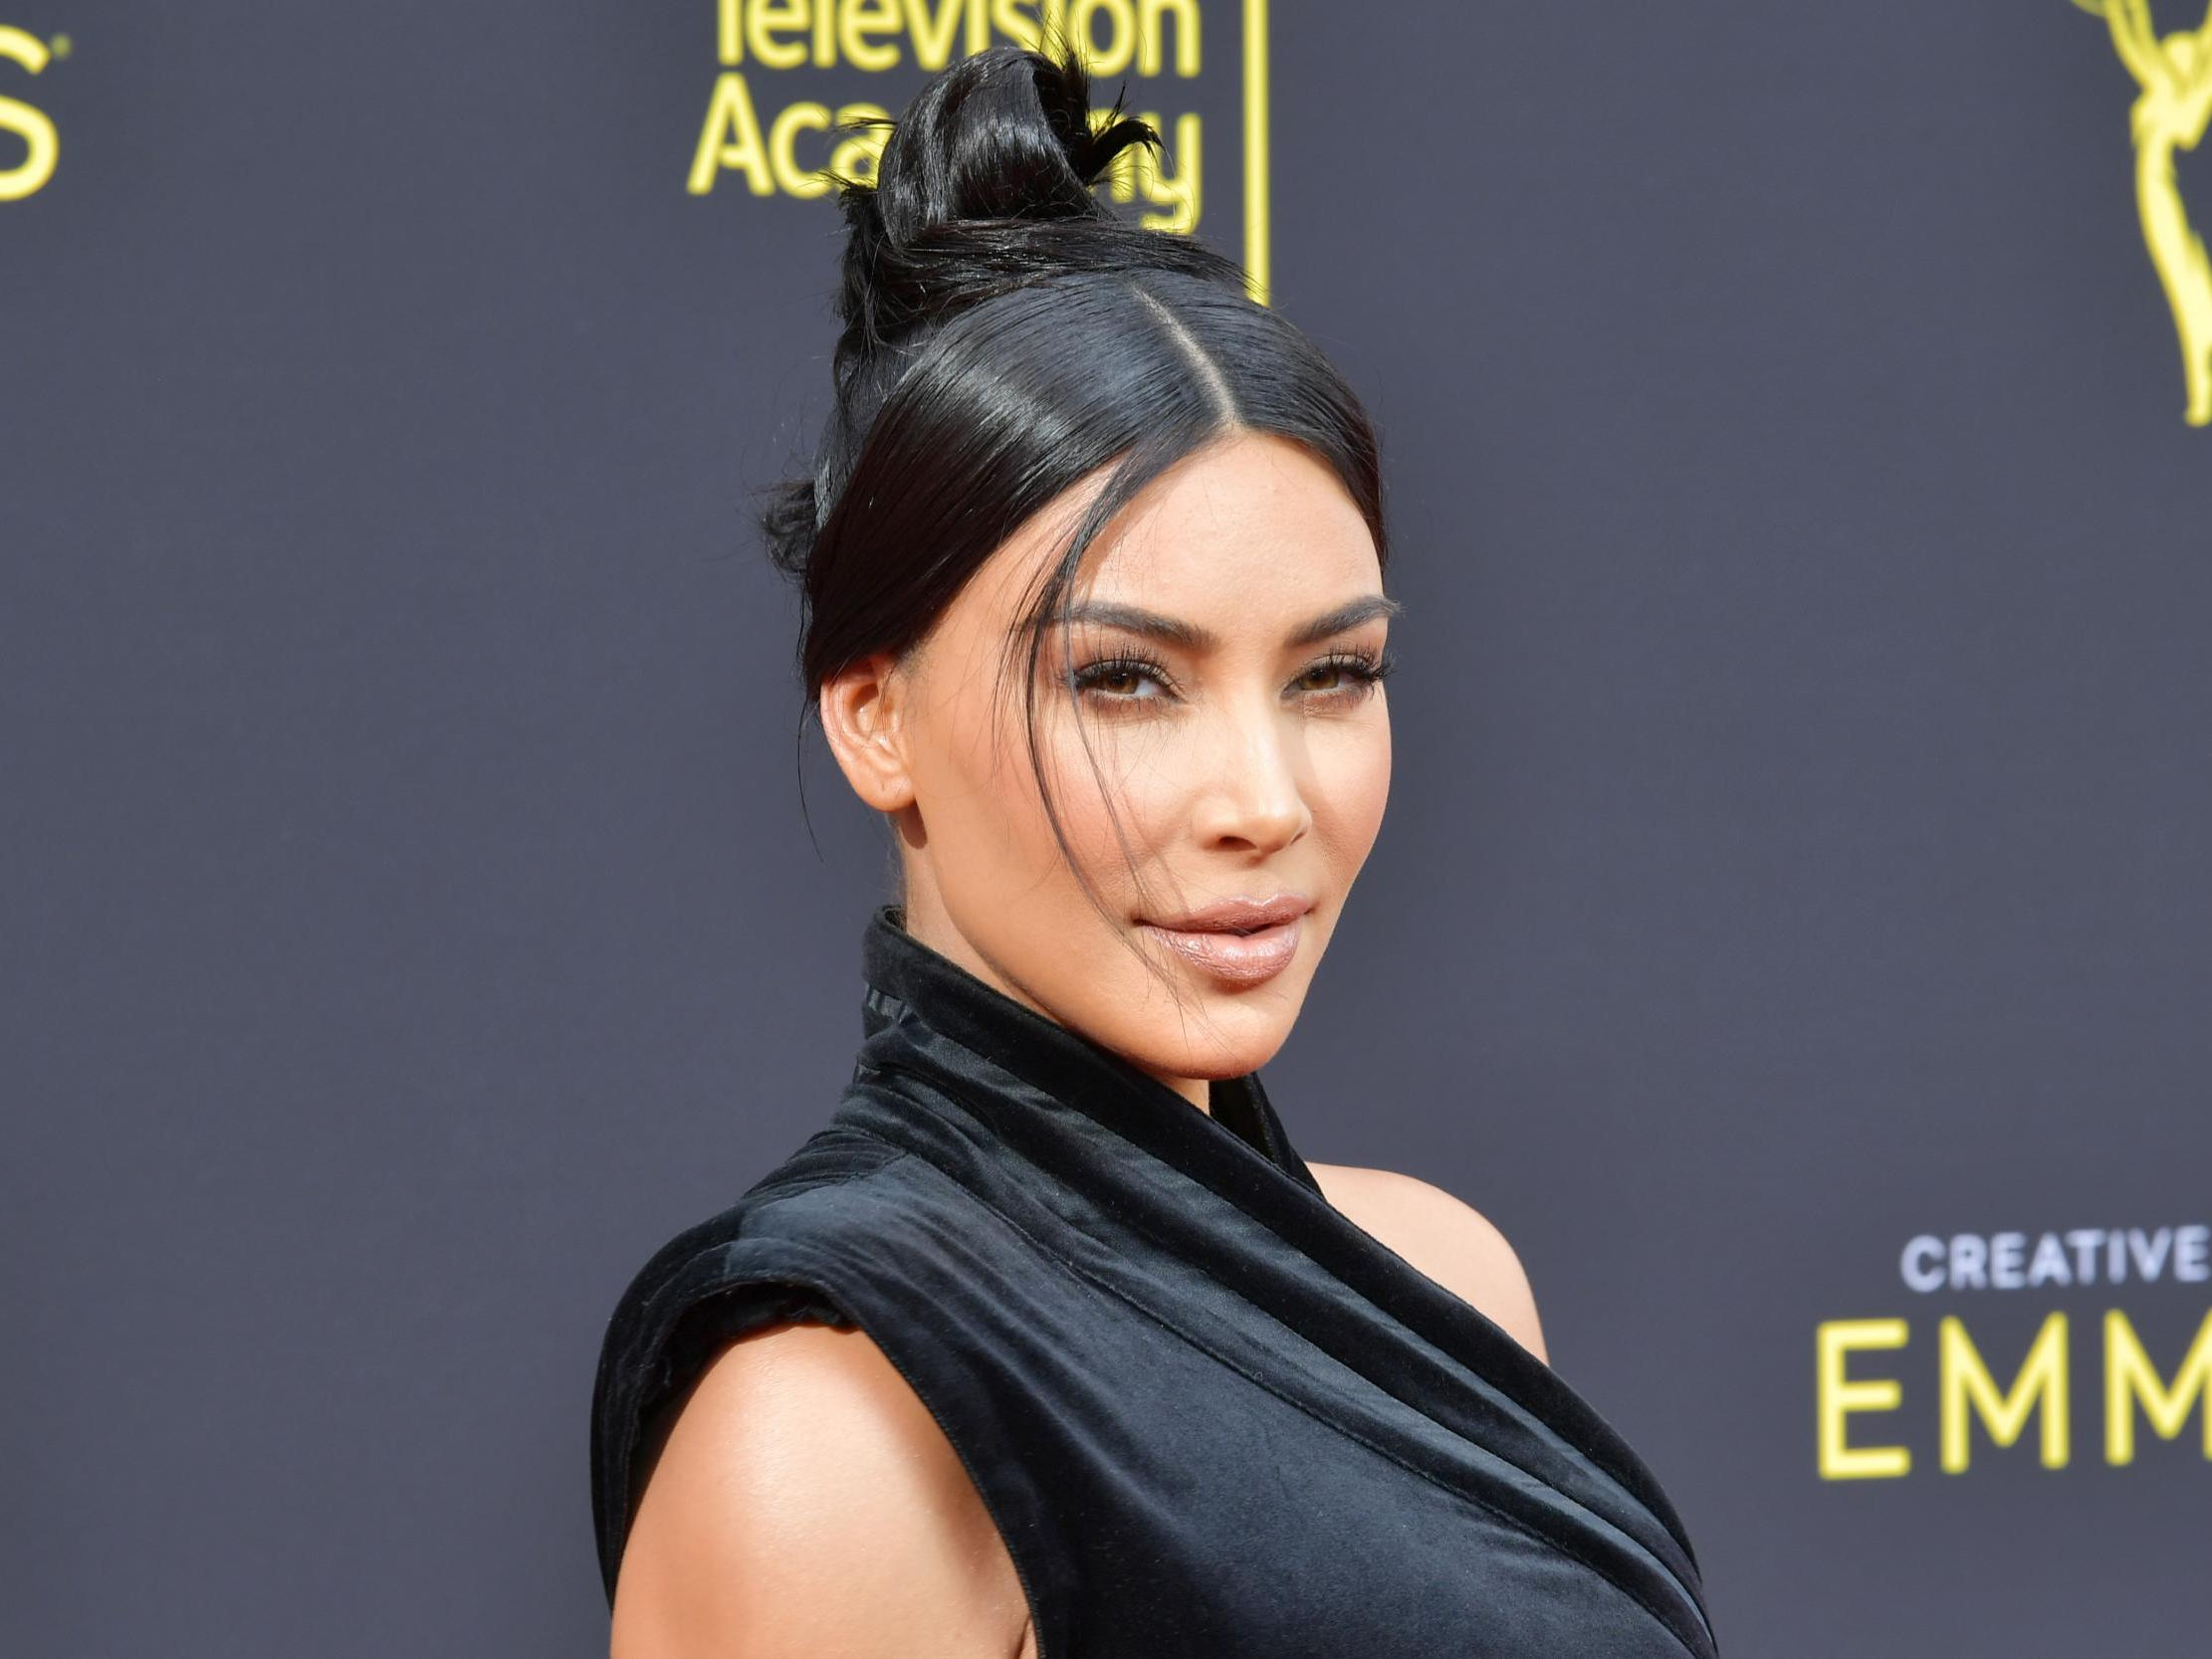 Kim Kardashian discusses 'painful and scary' psoriatic arthritis diagnosis in new essay